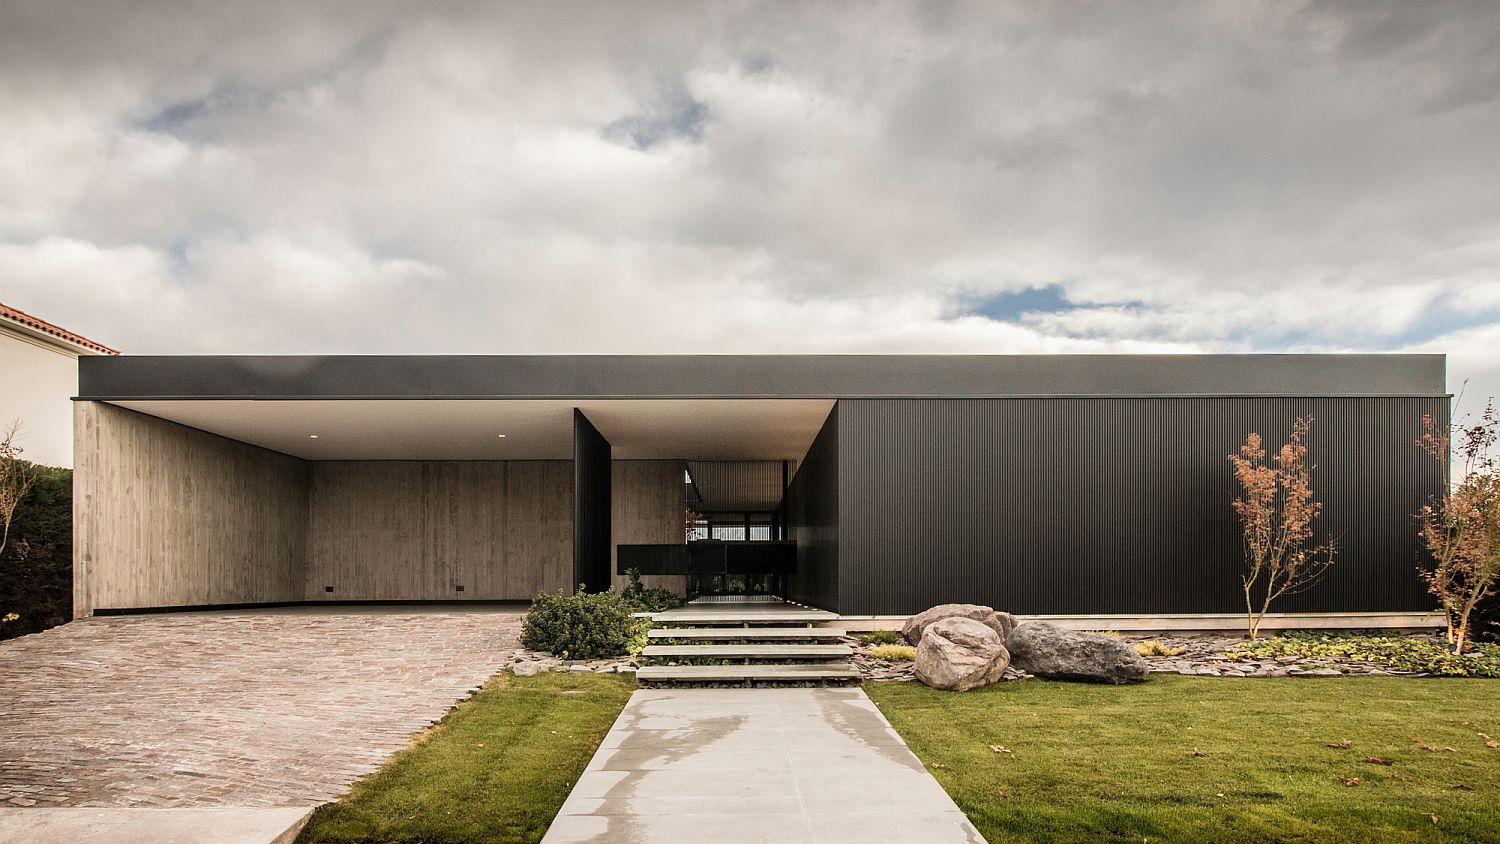 Street facade of the house combines privacy with modernity